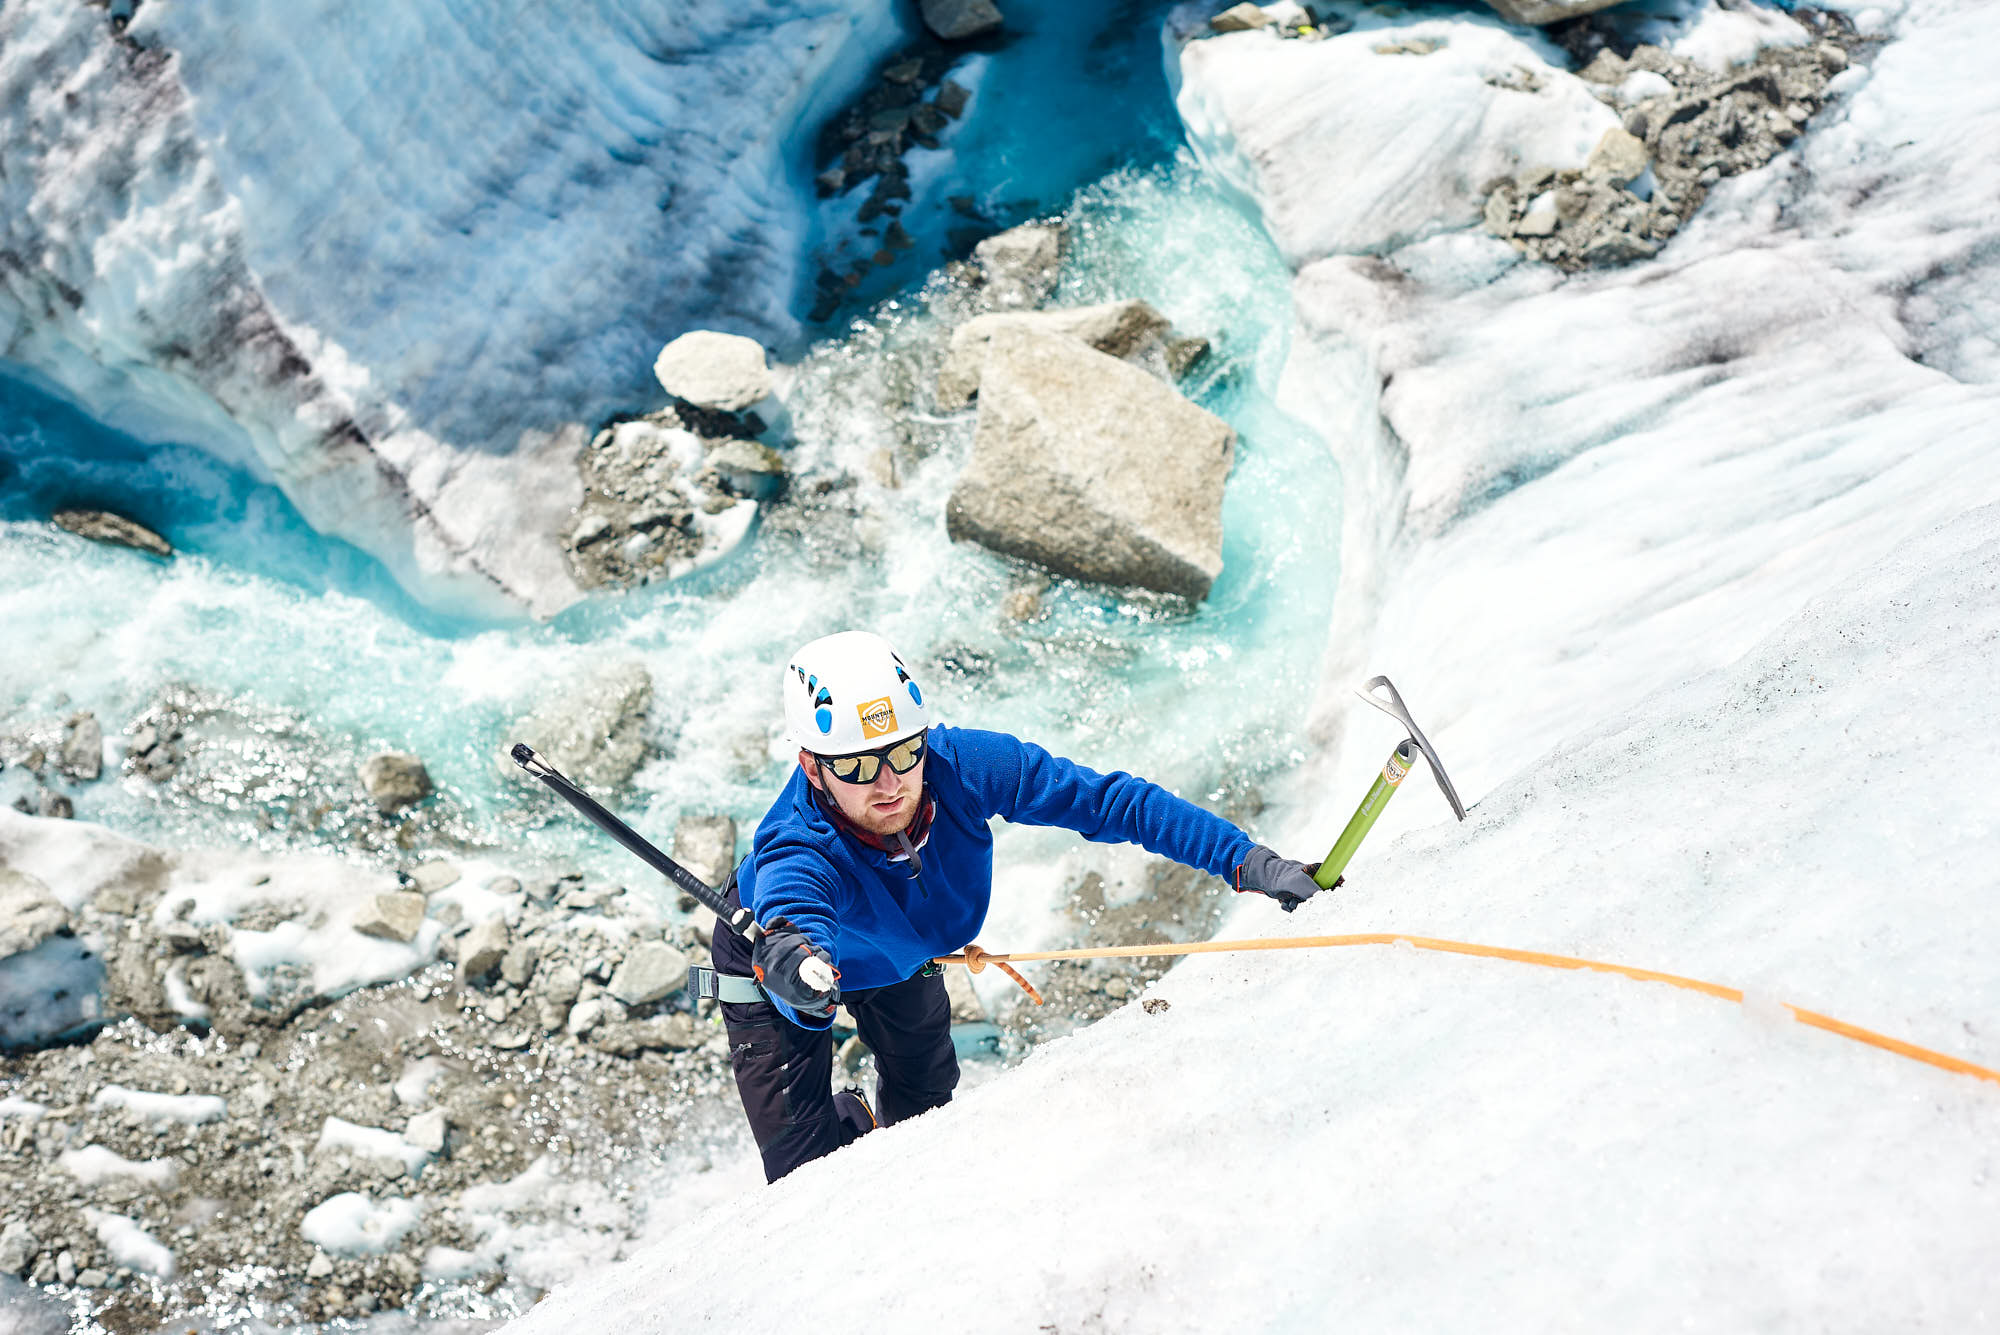 Mountaineer ice climbing on the Mer de Glace glacier